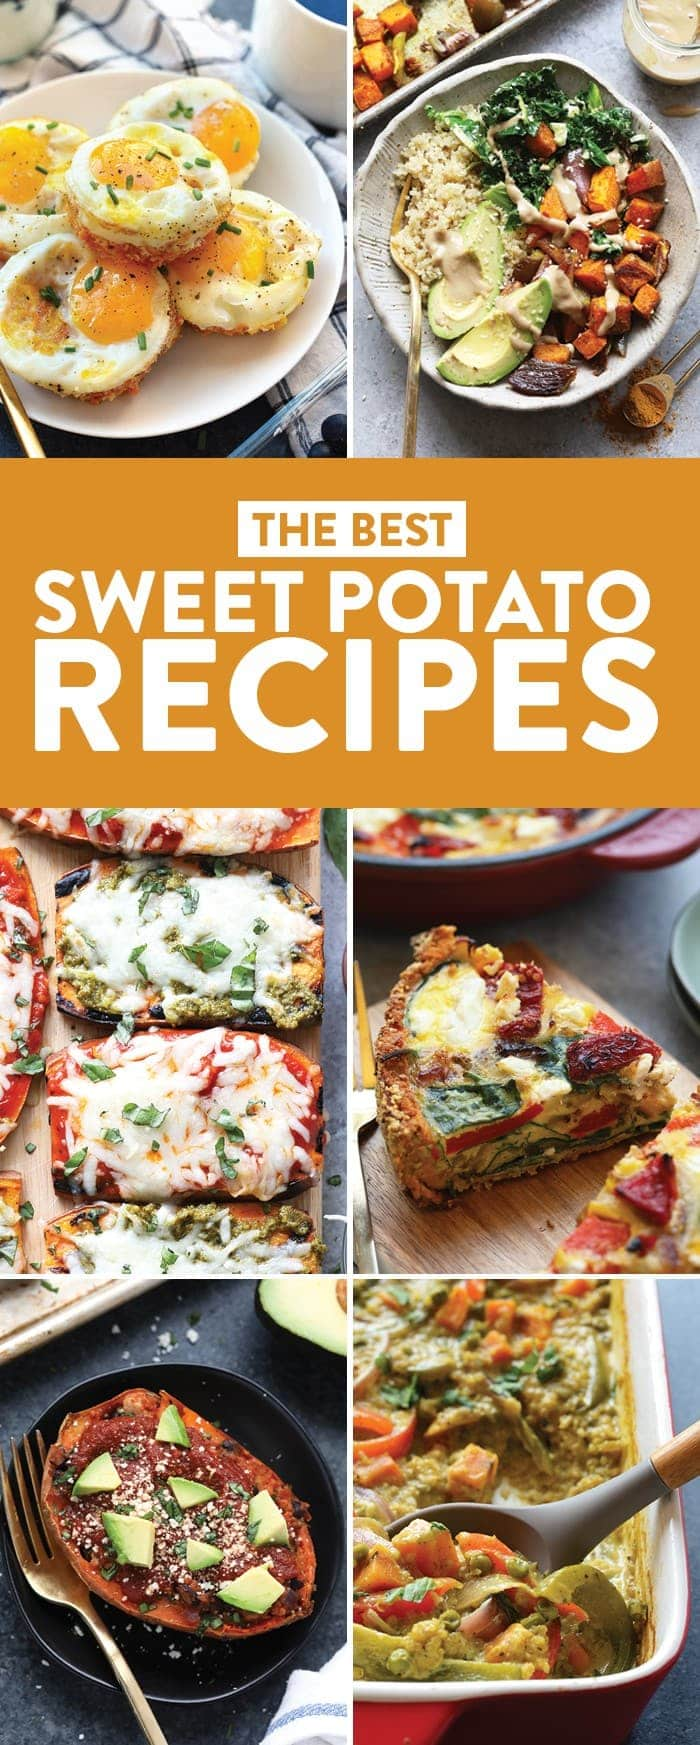 6 of the best sweet potato recipes.